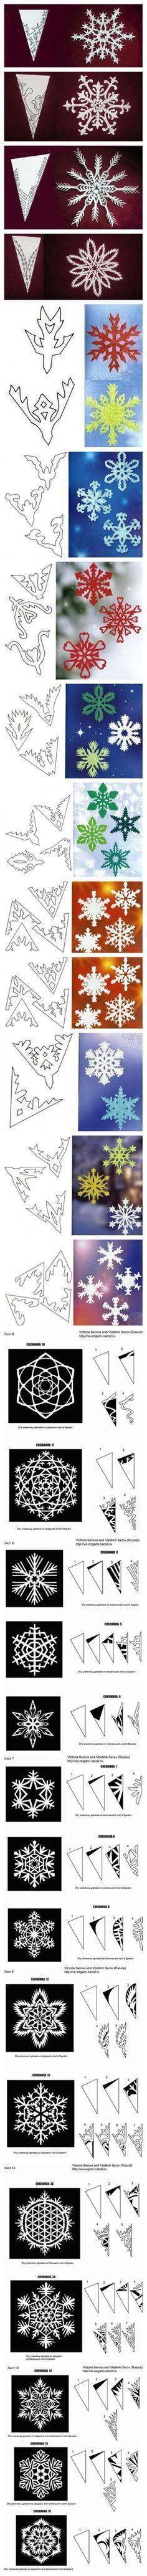 How to Make Excellent Paper Snowflakes Beyond the basics! #DIY #Paper_Snowflakes #joybx